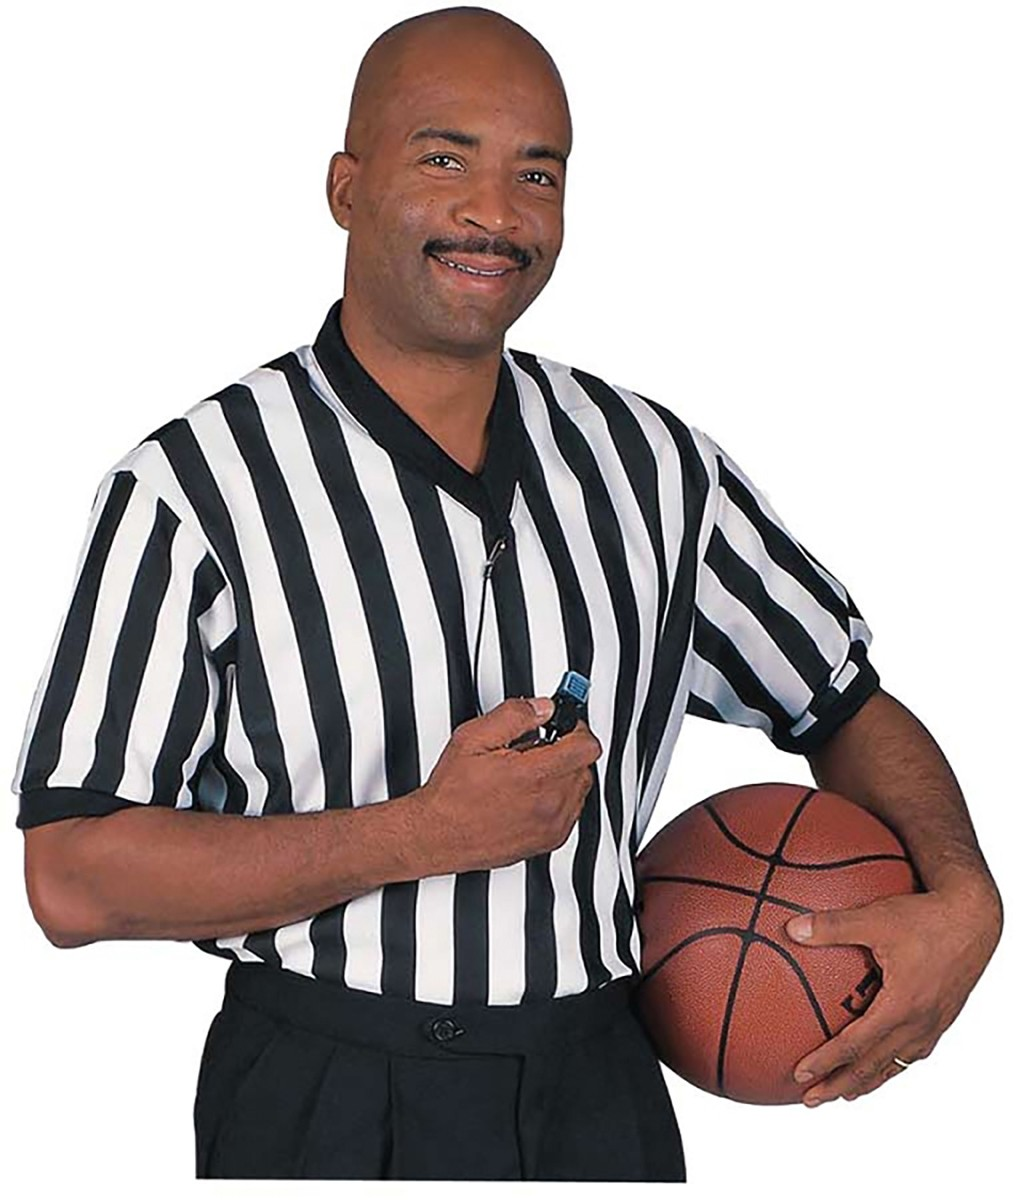 Dalco Official Basketball Referee's Jersey